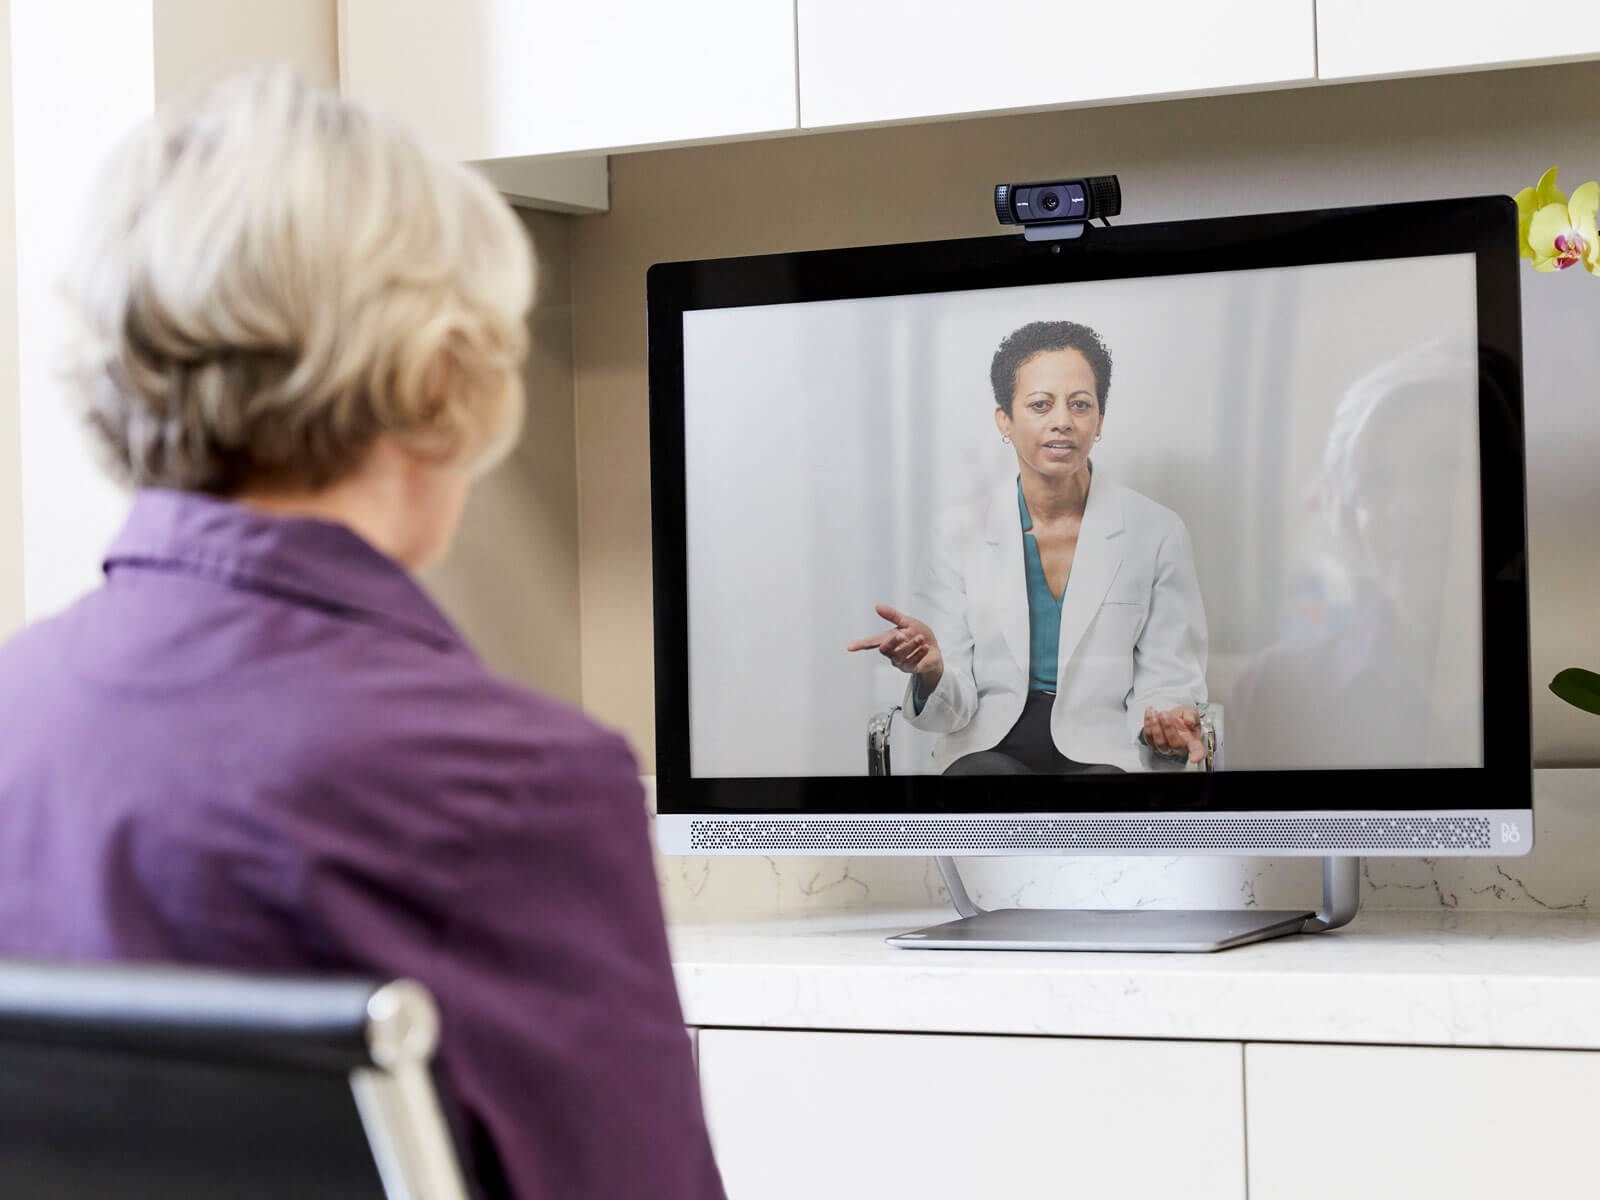 A woman receives medical advice from a secure visit with a doctor using Humana's telemedicine benefit.